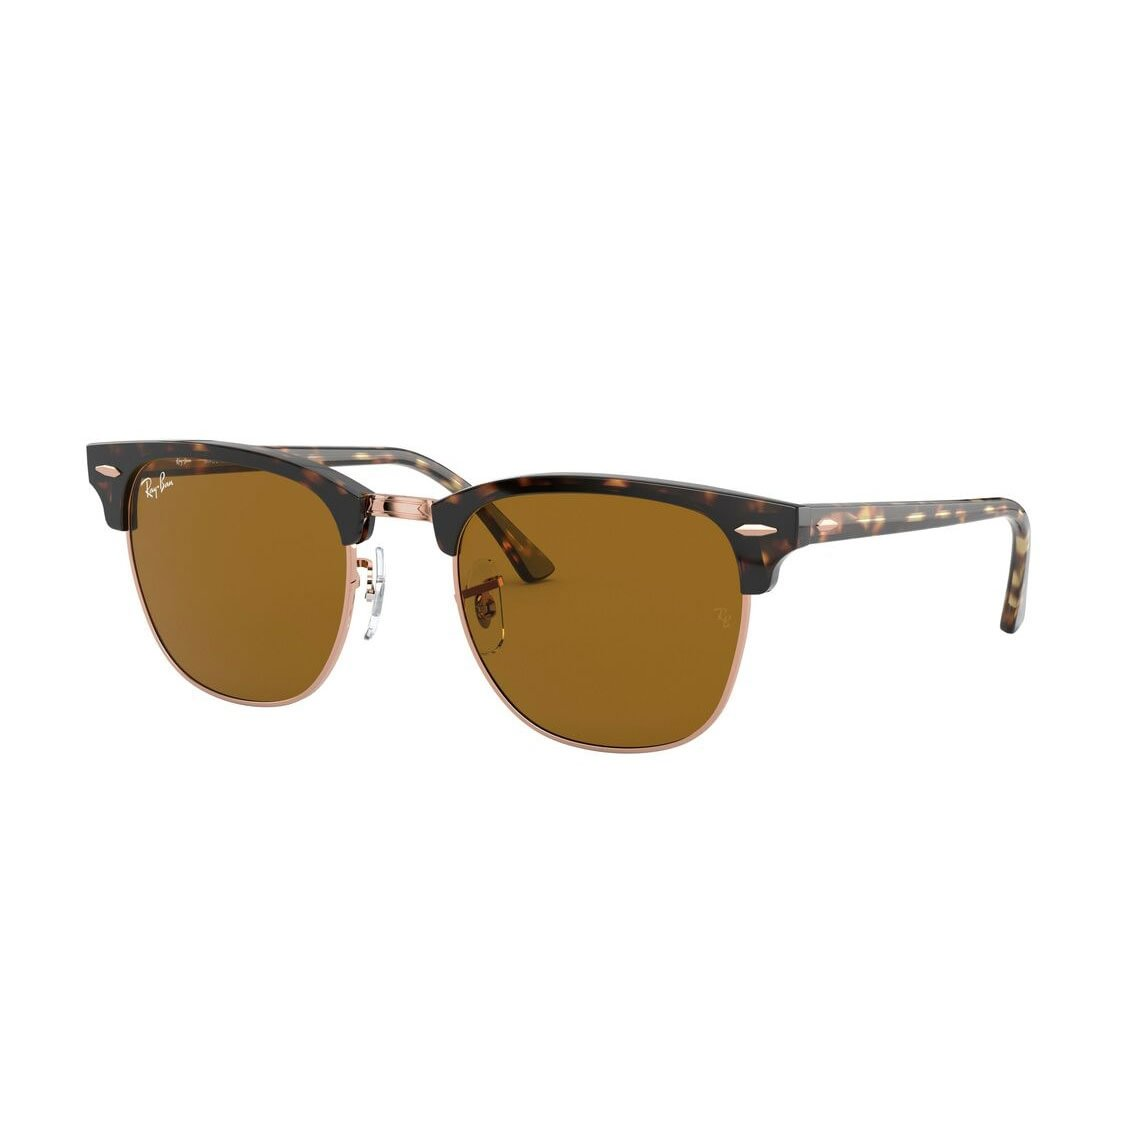 Ray-Ban Clubmaster RB3016 130933 49